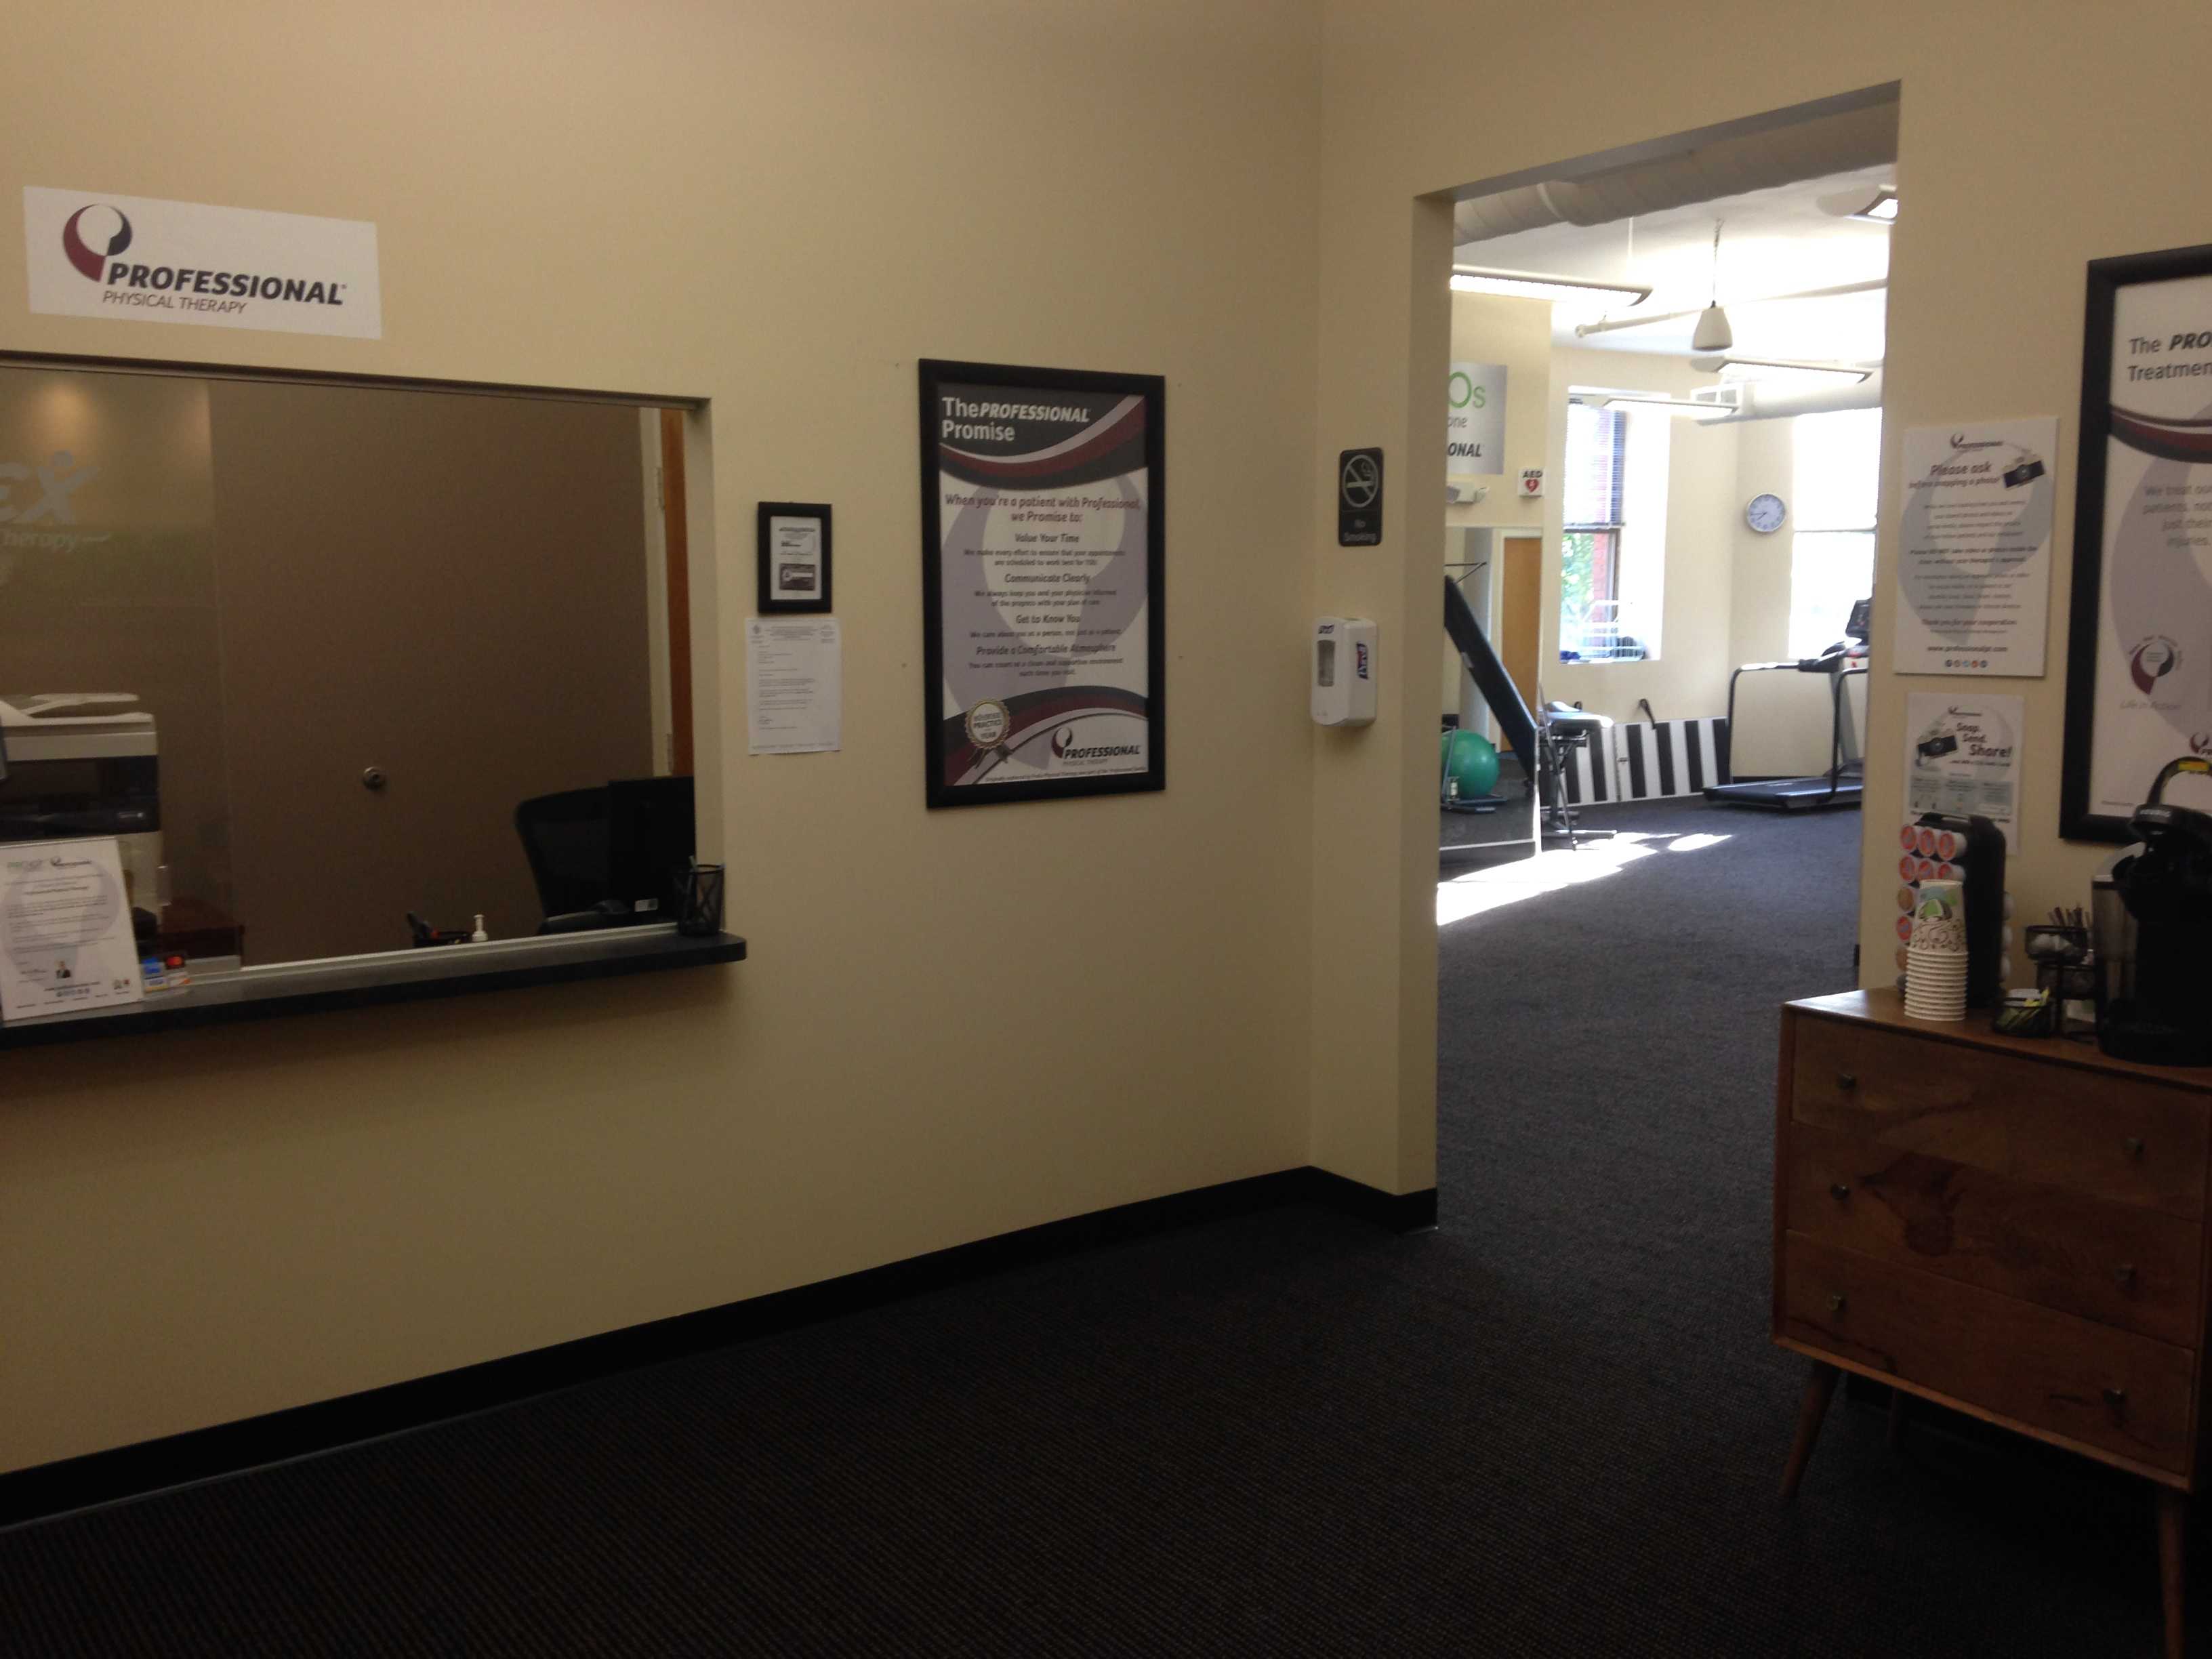 Professional Physical Therapy image 4